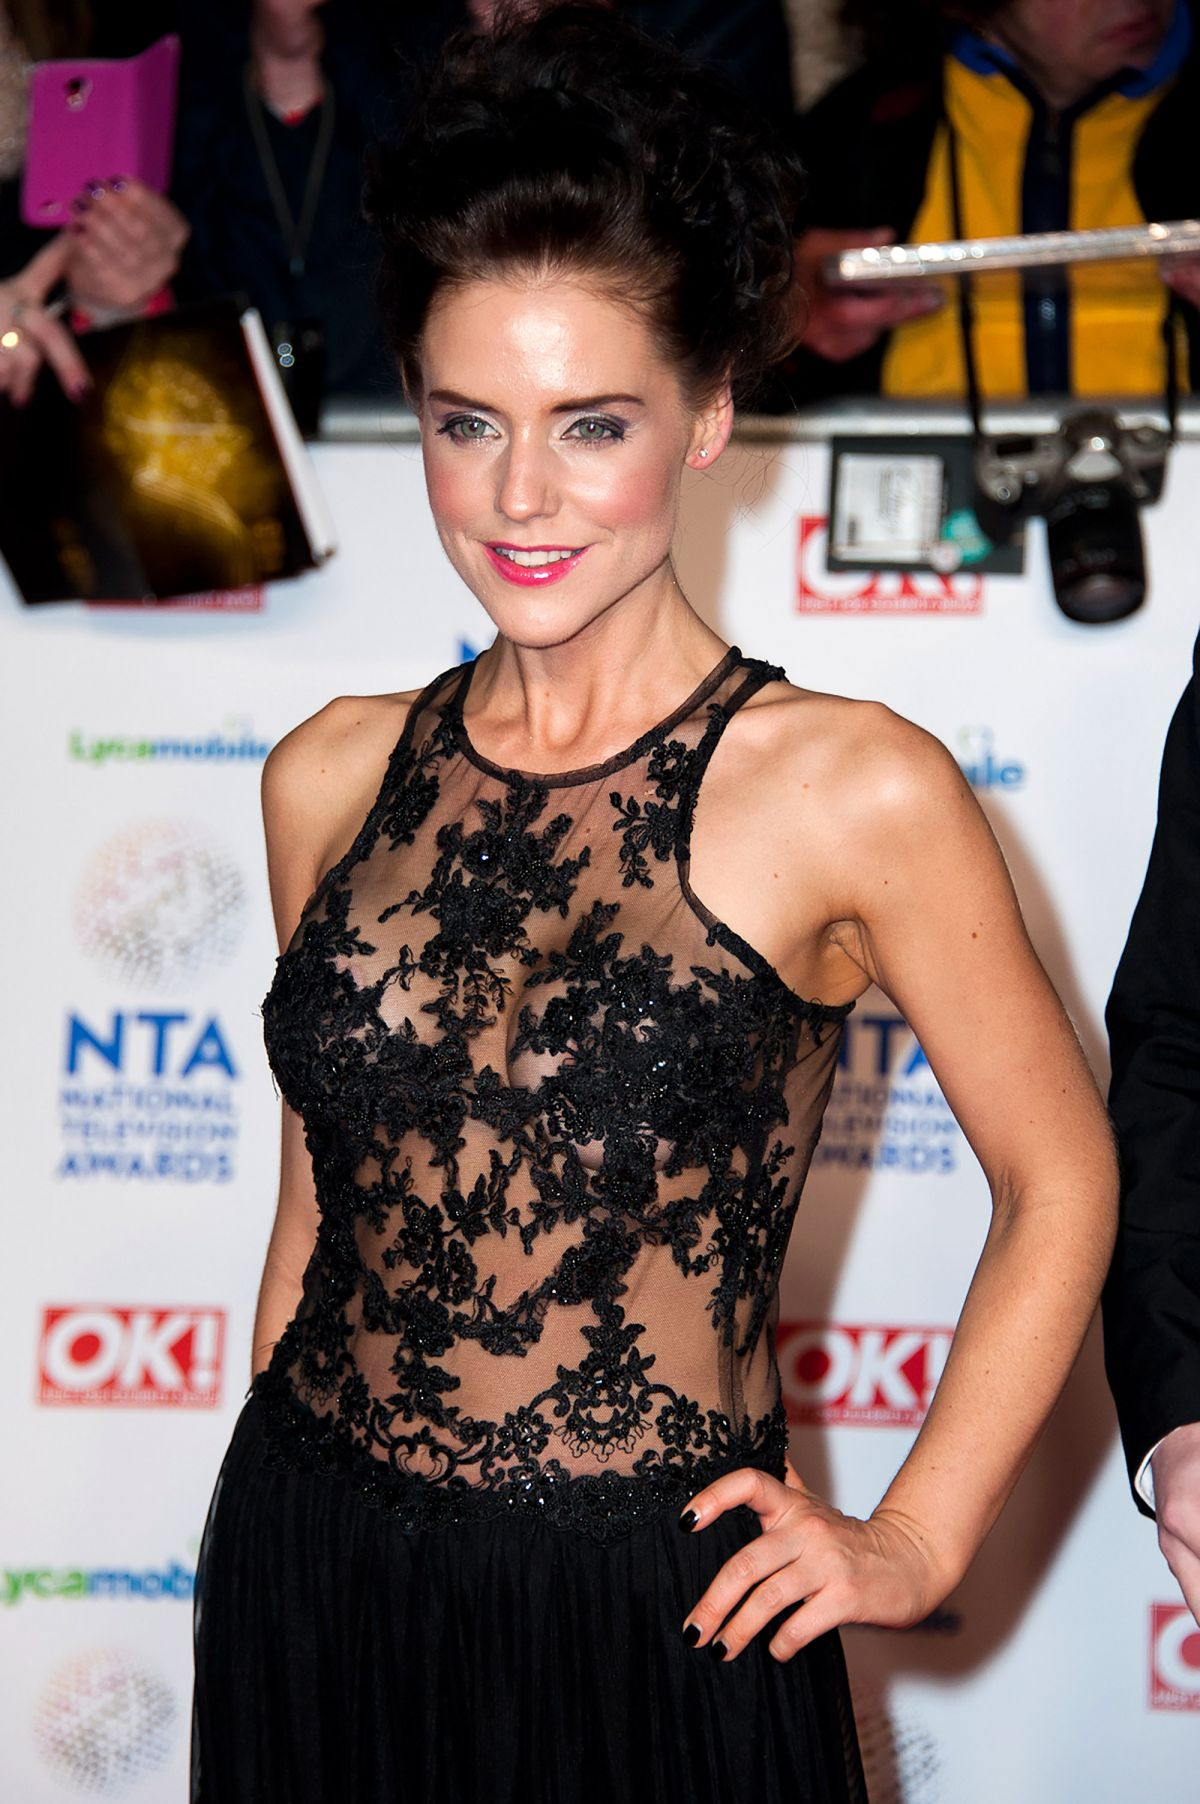 Hot Stephanie Waring nude (67 foto and video), Pussy, Leaked, Boobs, panties 2020